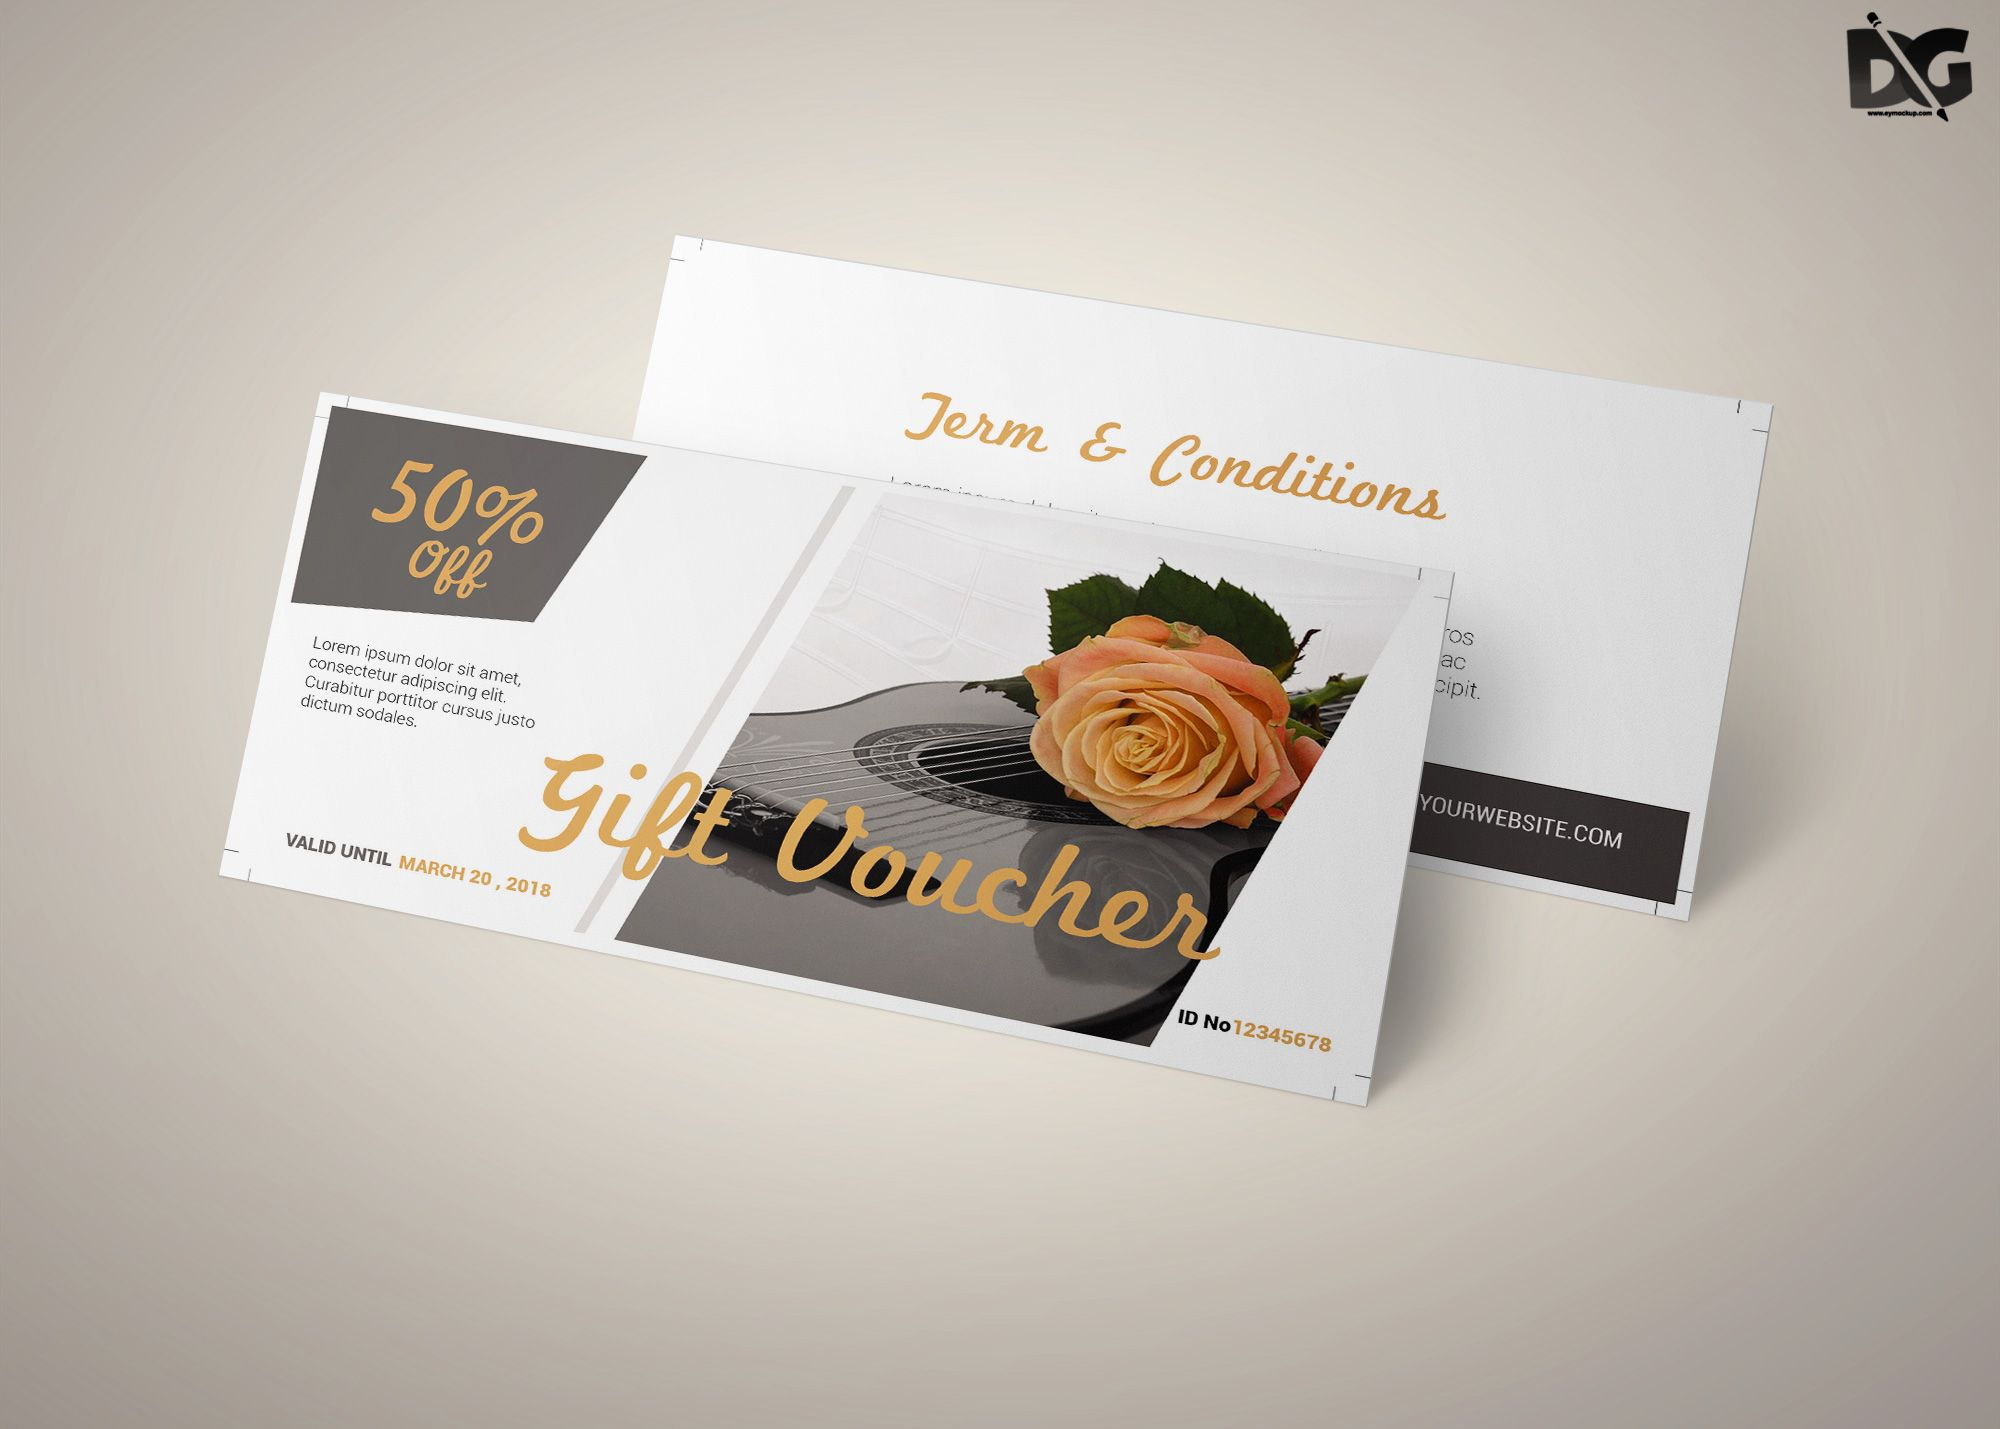 Free Download Flower Shop Voucher Template download